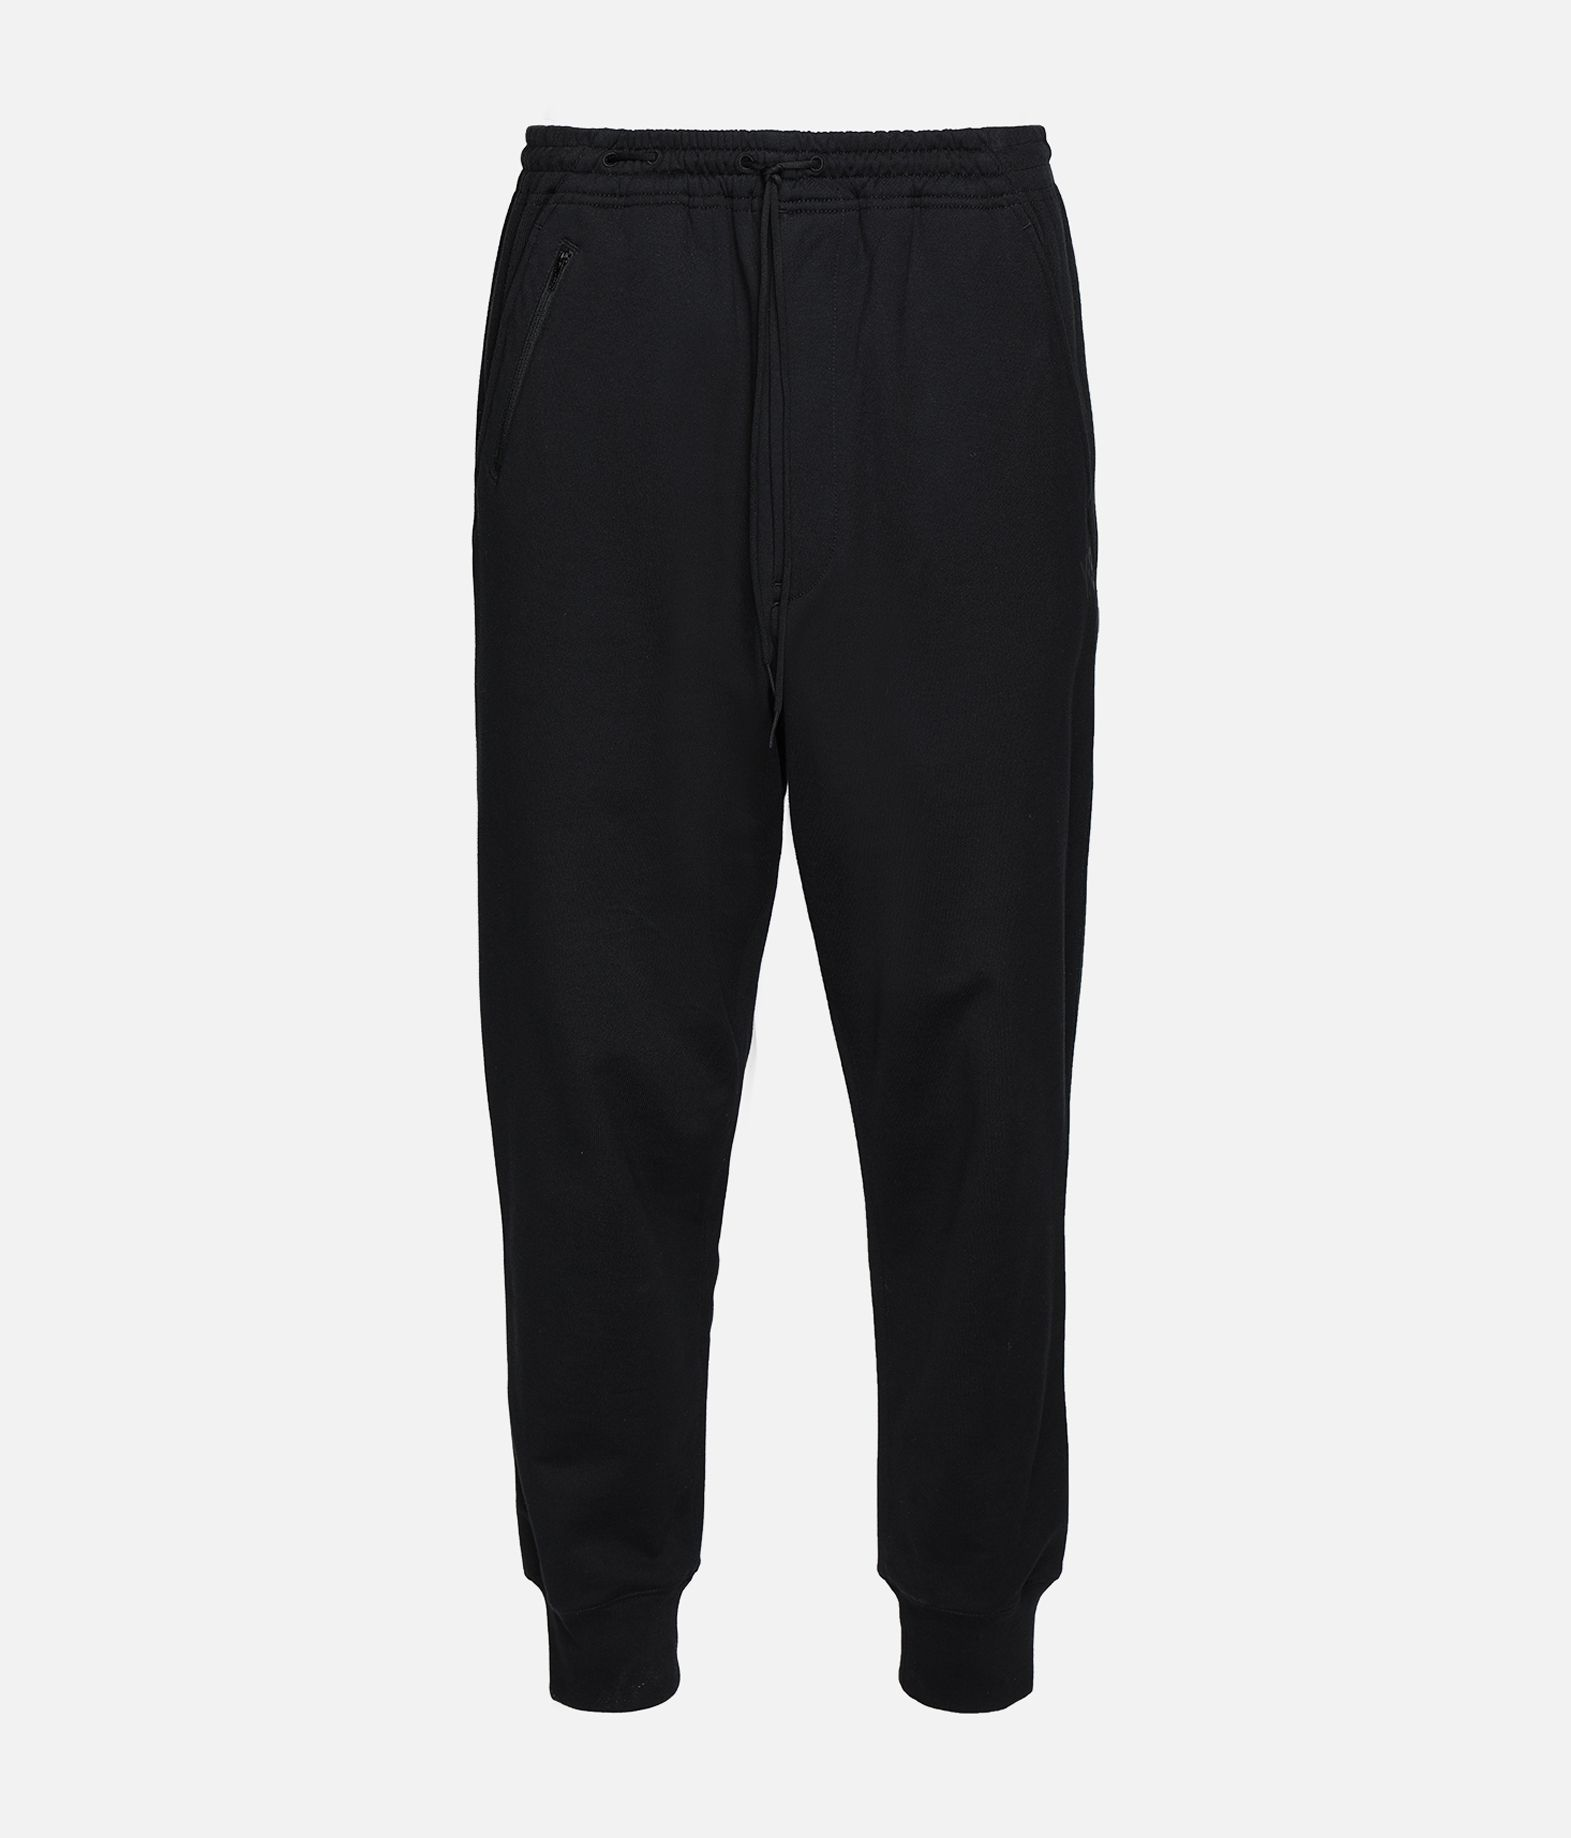 Y-3 Y-3 Classic Cuffed Pants Casual pants Man f